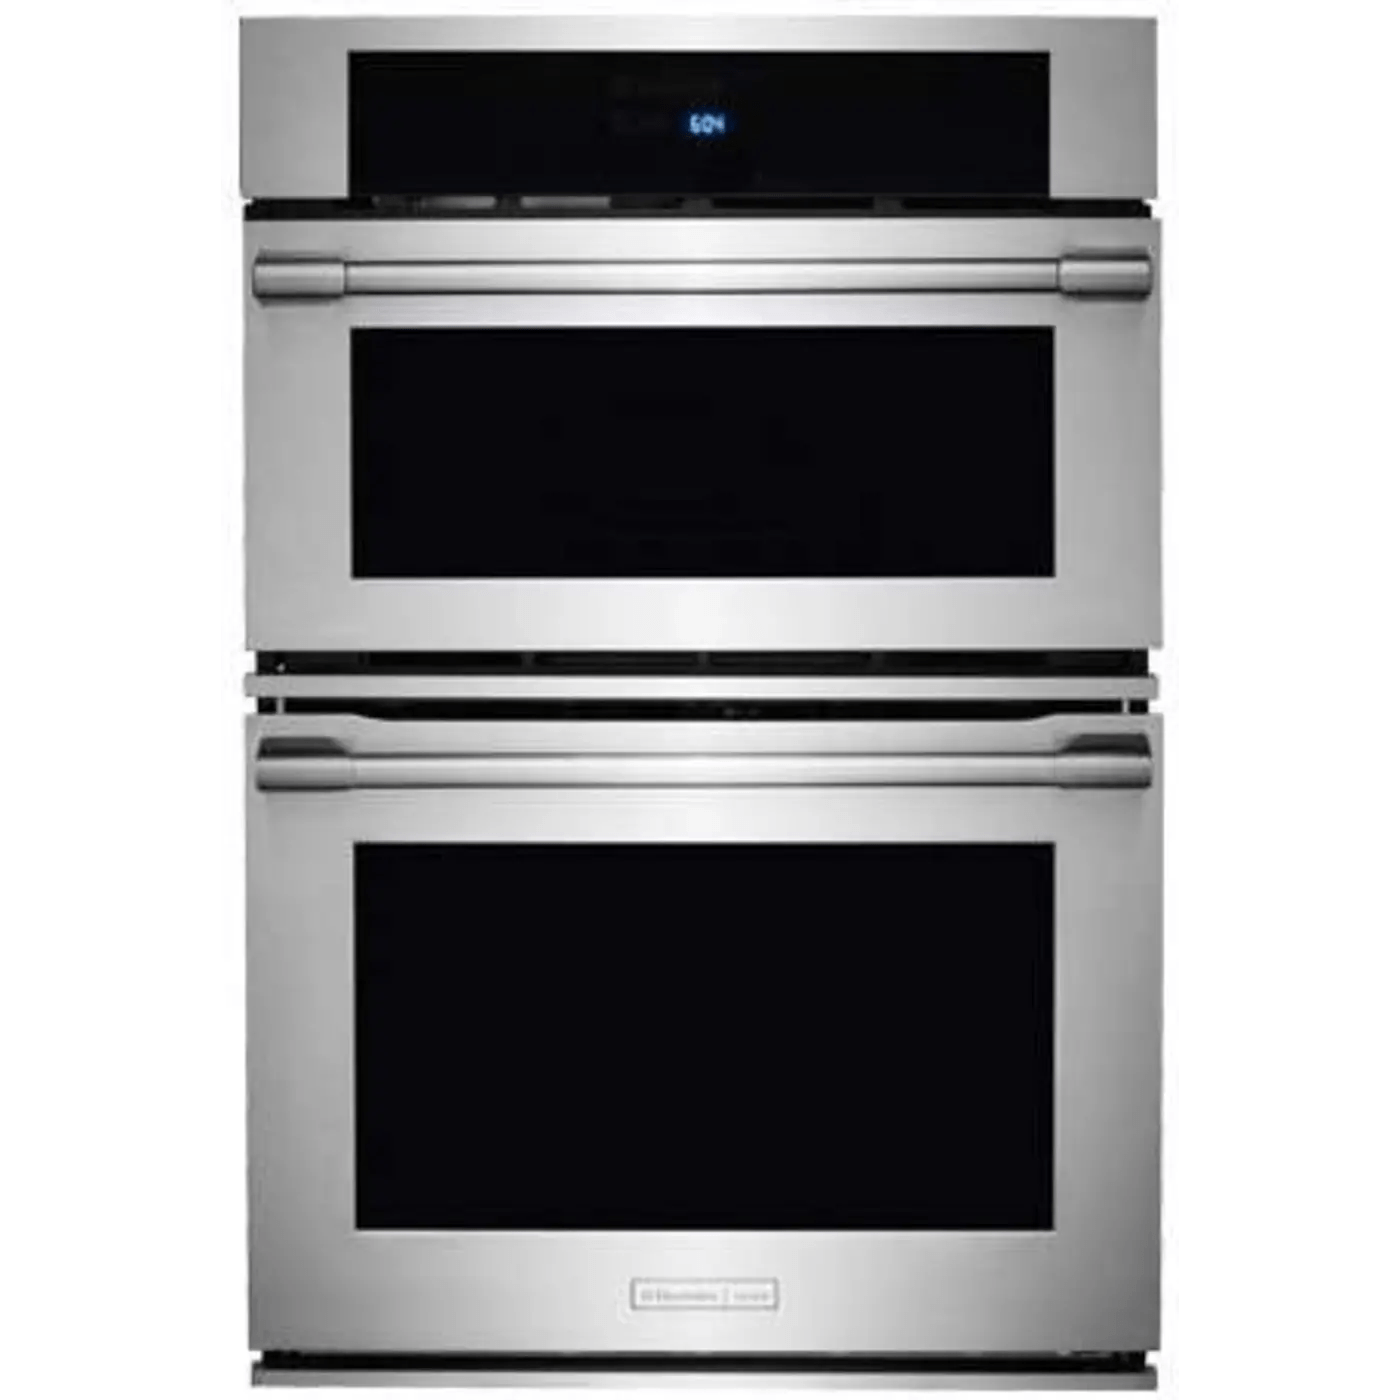 hight resolution of electrolux icon e30mc75pps